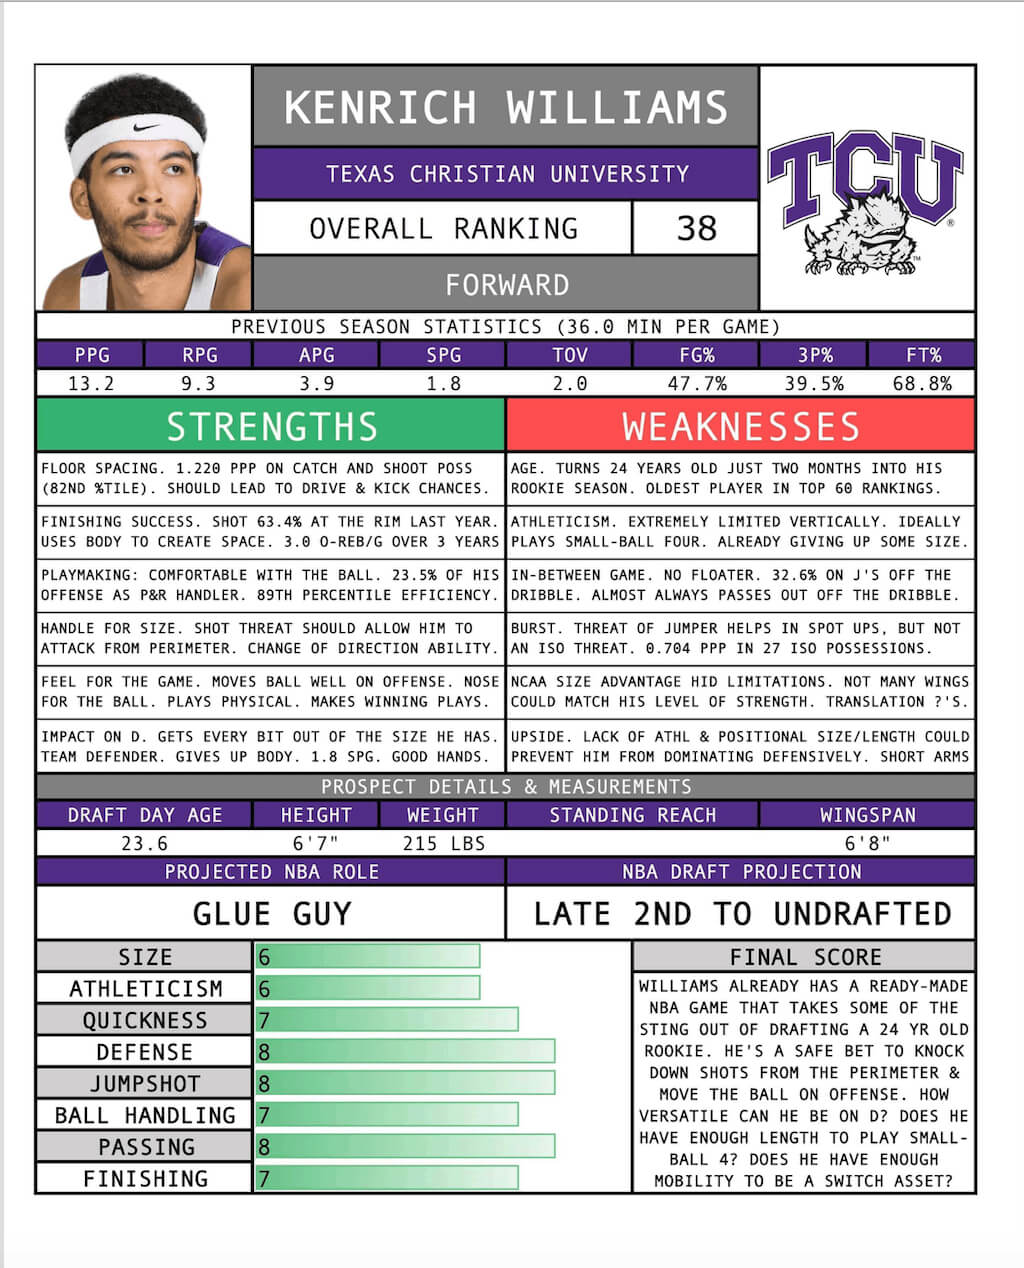 2018 Nba Draft - Full Scouting Reports (Sample) : Nba Draft Throughout Basketball Player Scouting Report Template